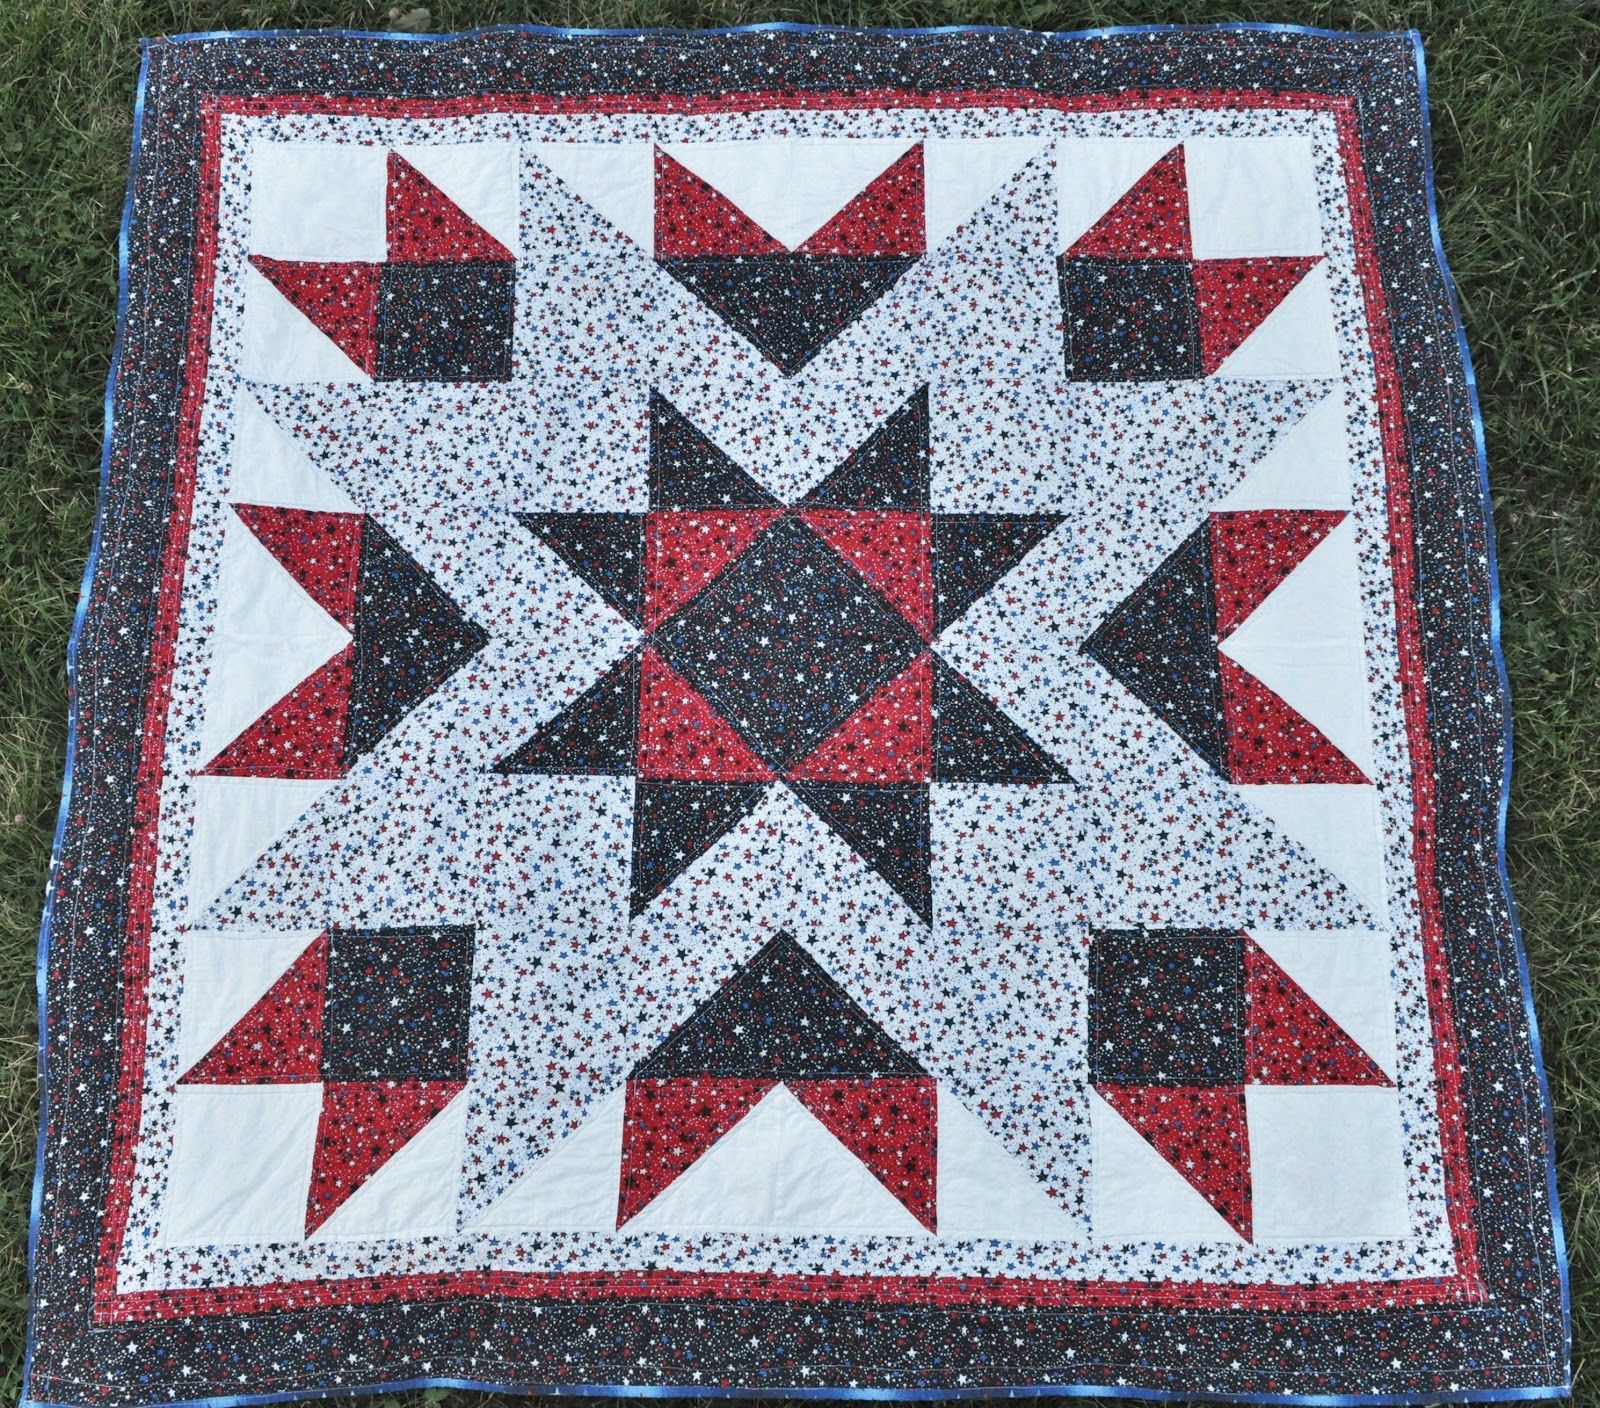 Quilt Patterns for Soldiers - Bing Images | quilts of valor ... : quilts for soldiers - Adamdwight.com